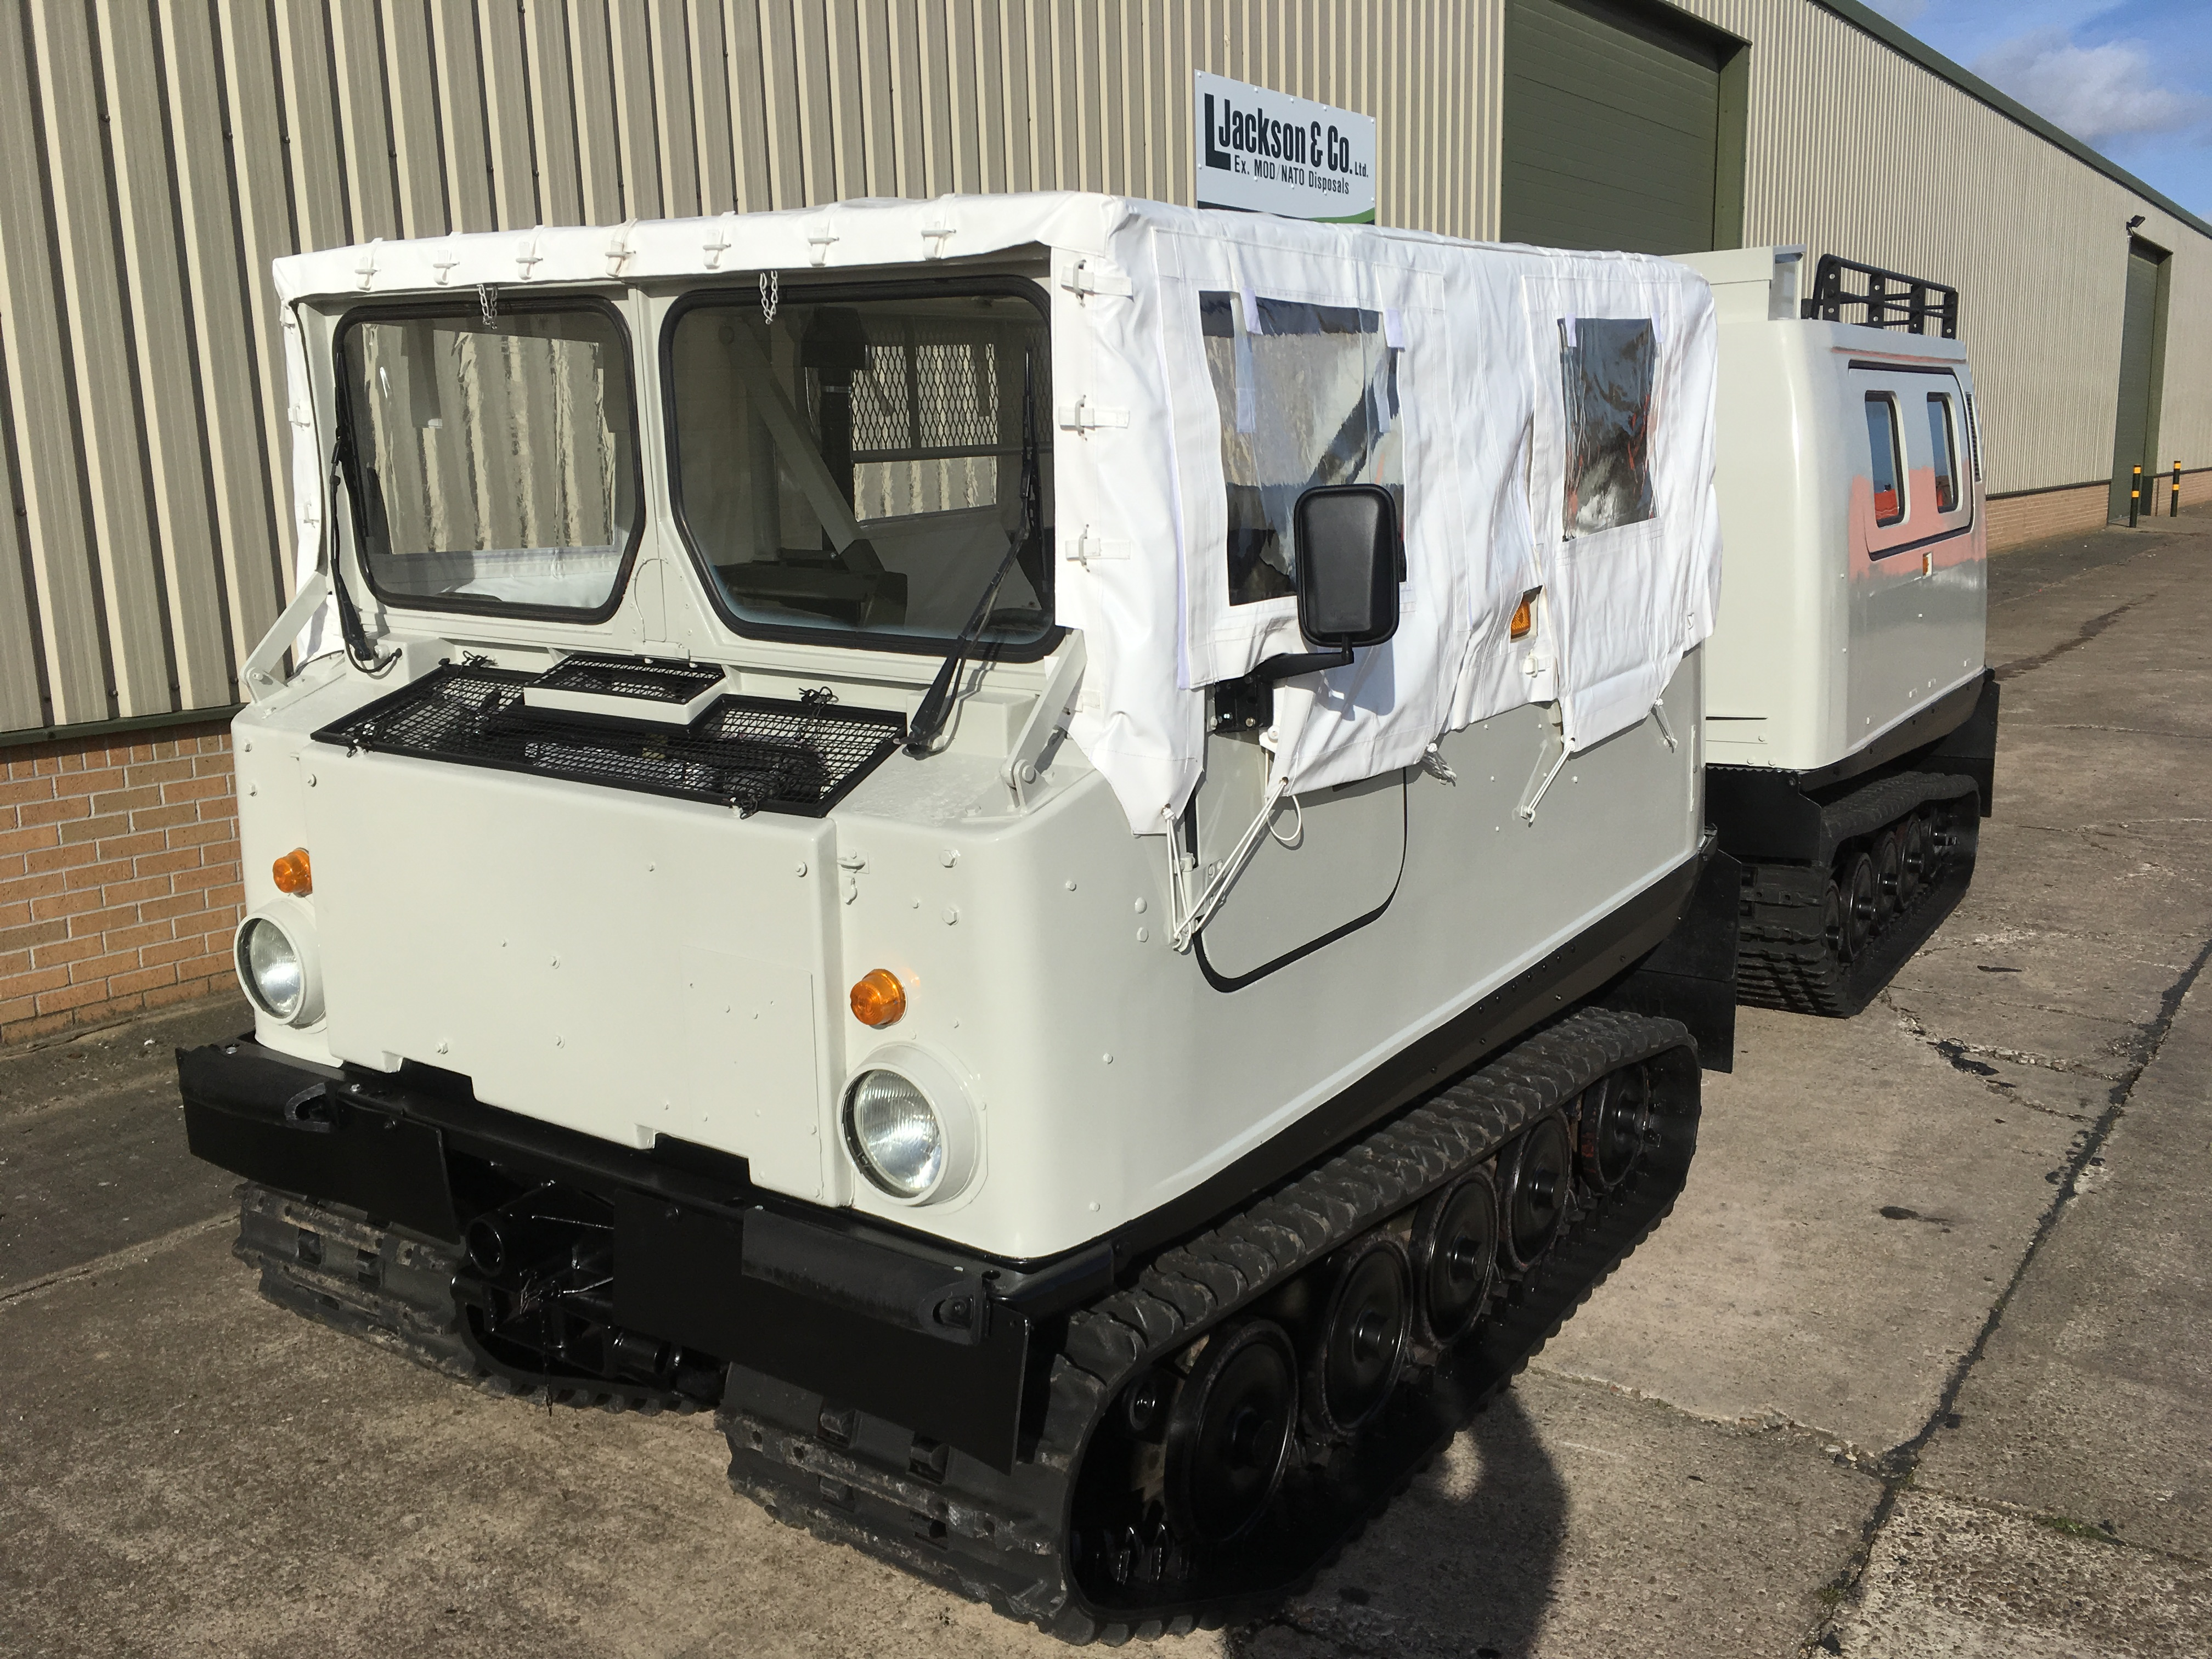 Hagglund Bv206 Soft Top (Front) & Hard Top (Rear)  for sale